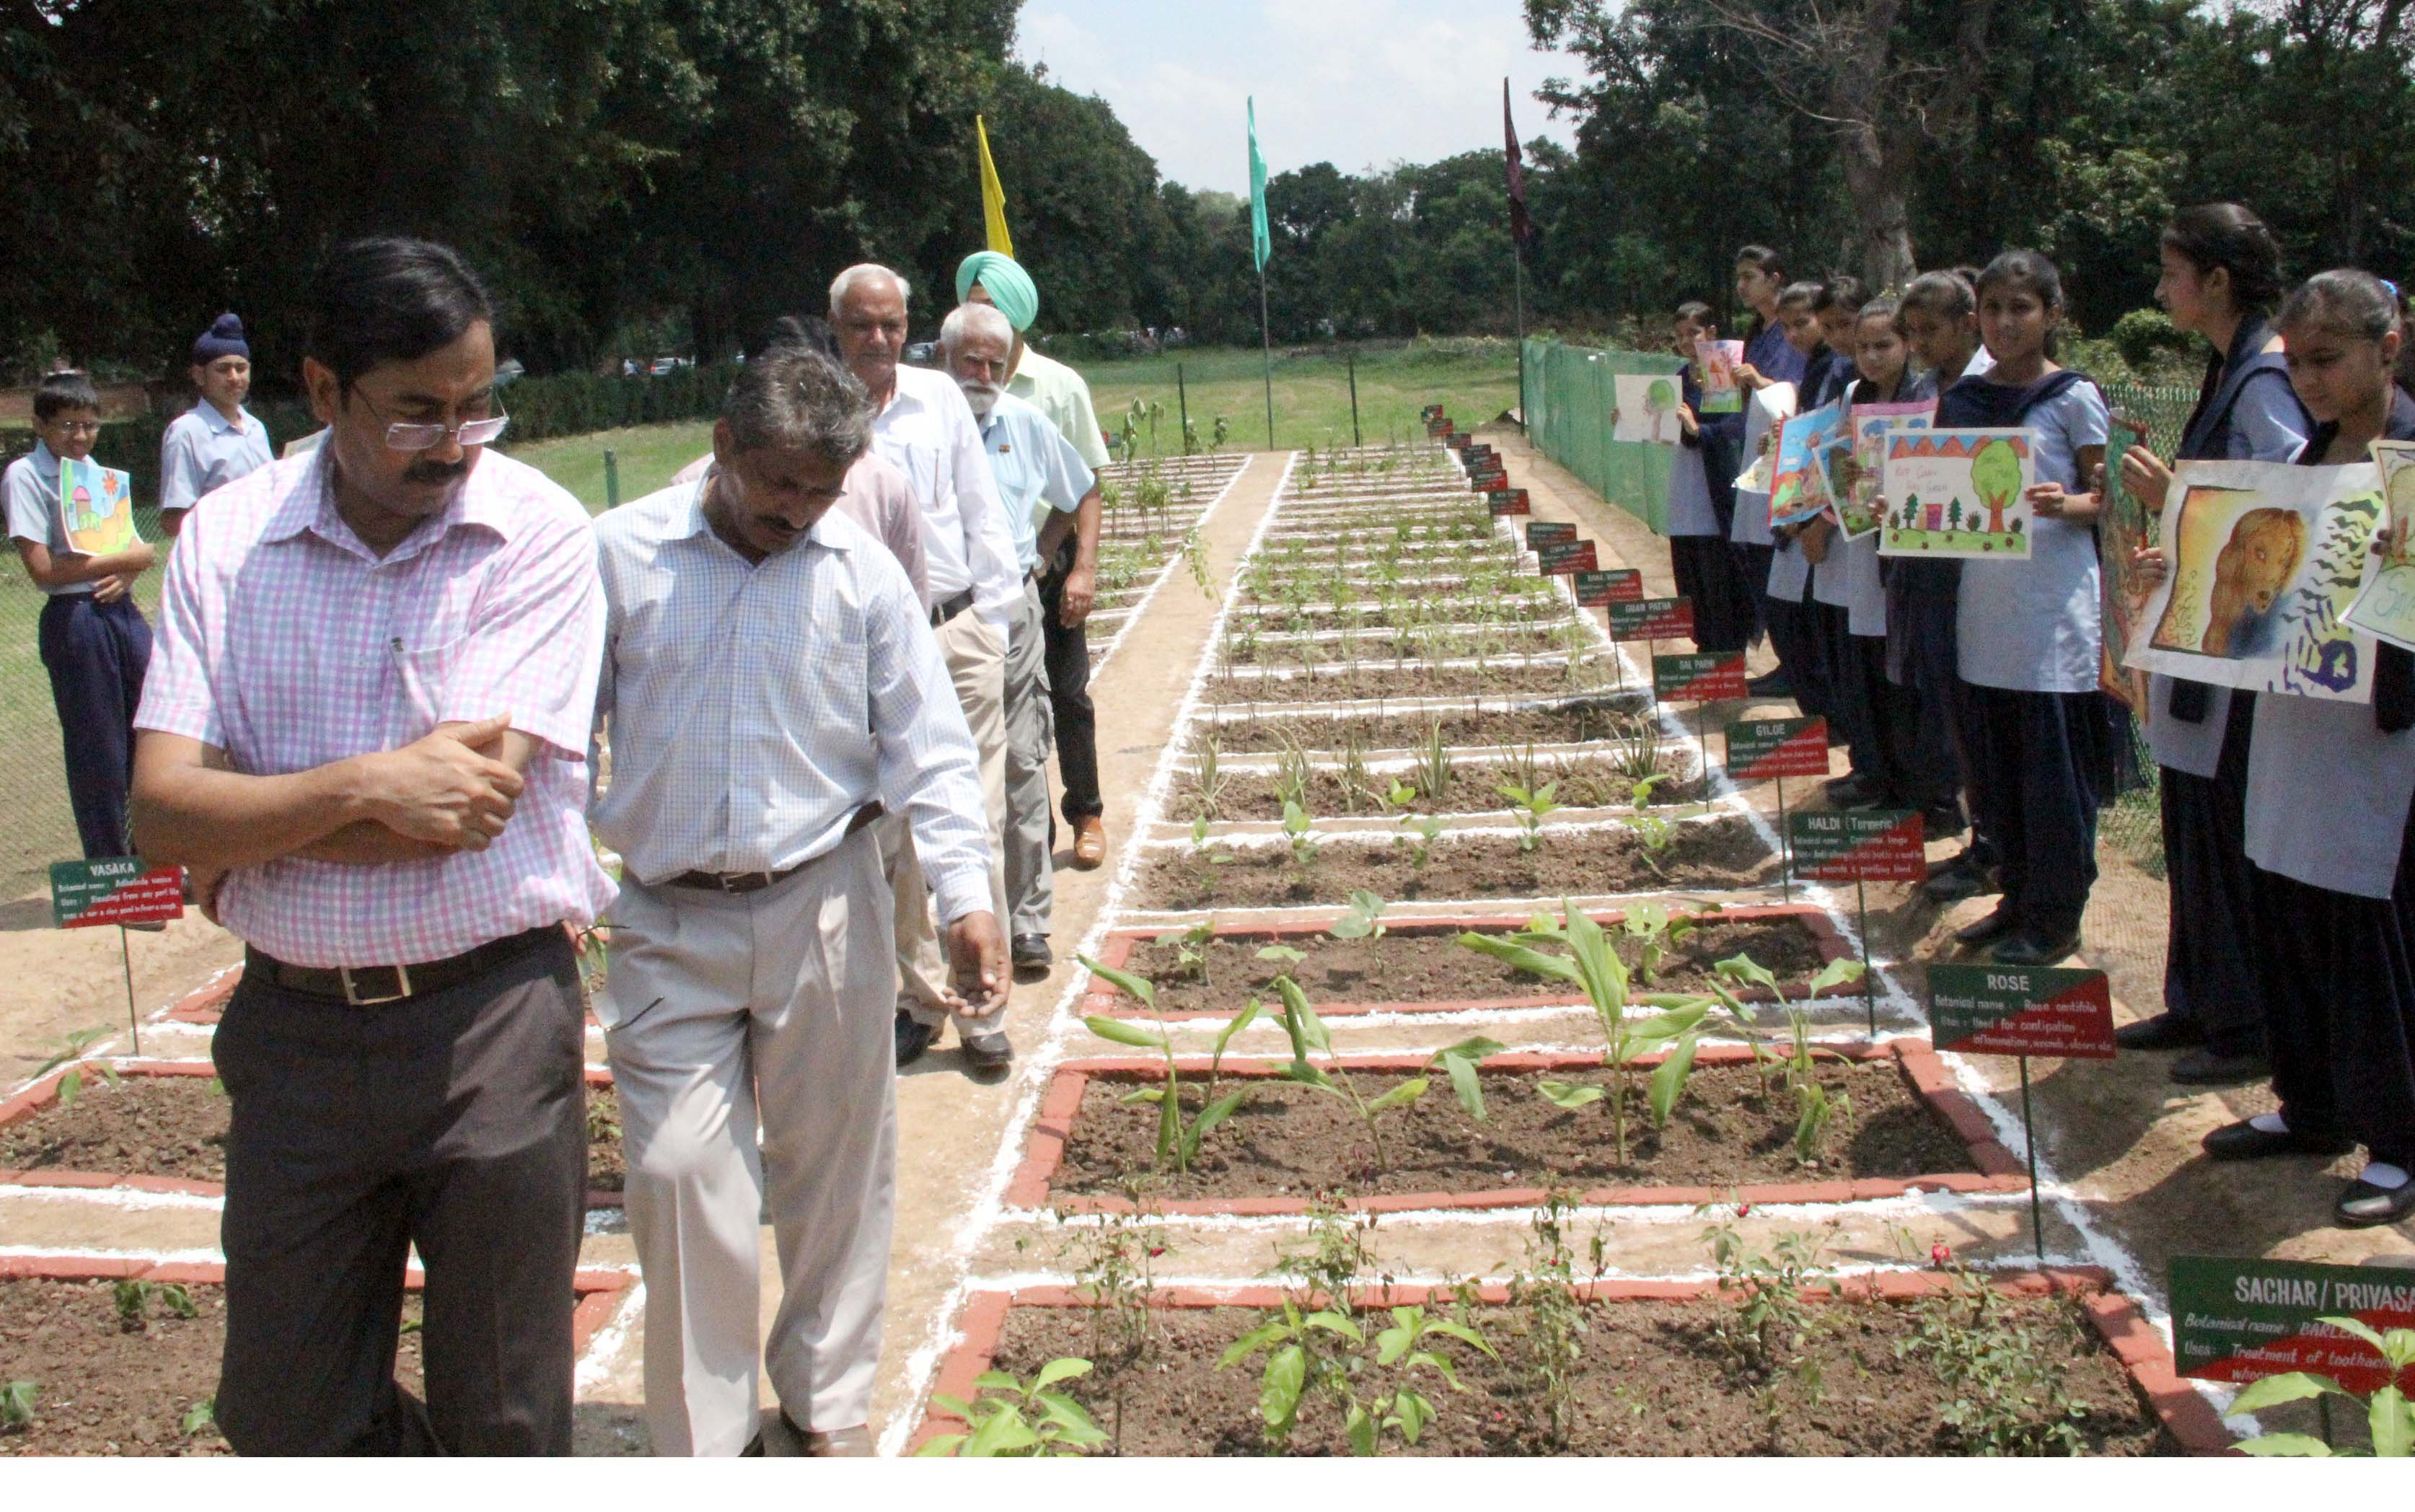 UT Home Secretary, Mr. Anil Kumar taking a round of nursery on the celebration of HERBAL DAY -2014 at Rose Nursery, Sector-23, Chandigarh on Wednesday, July 30, 2014.